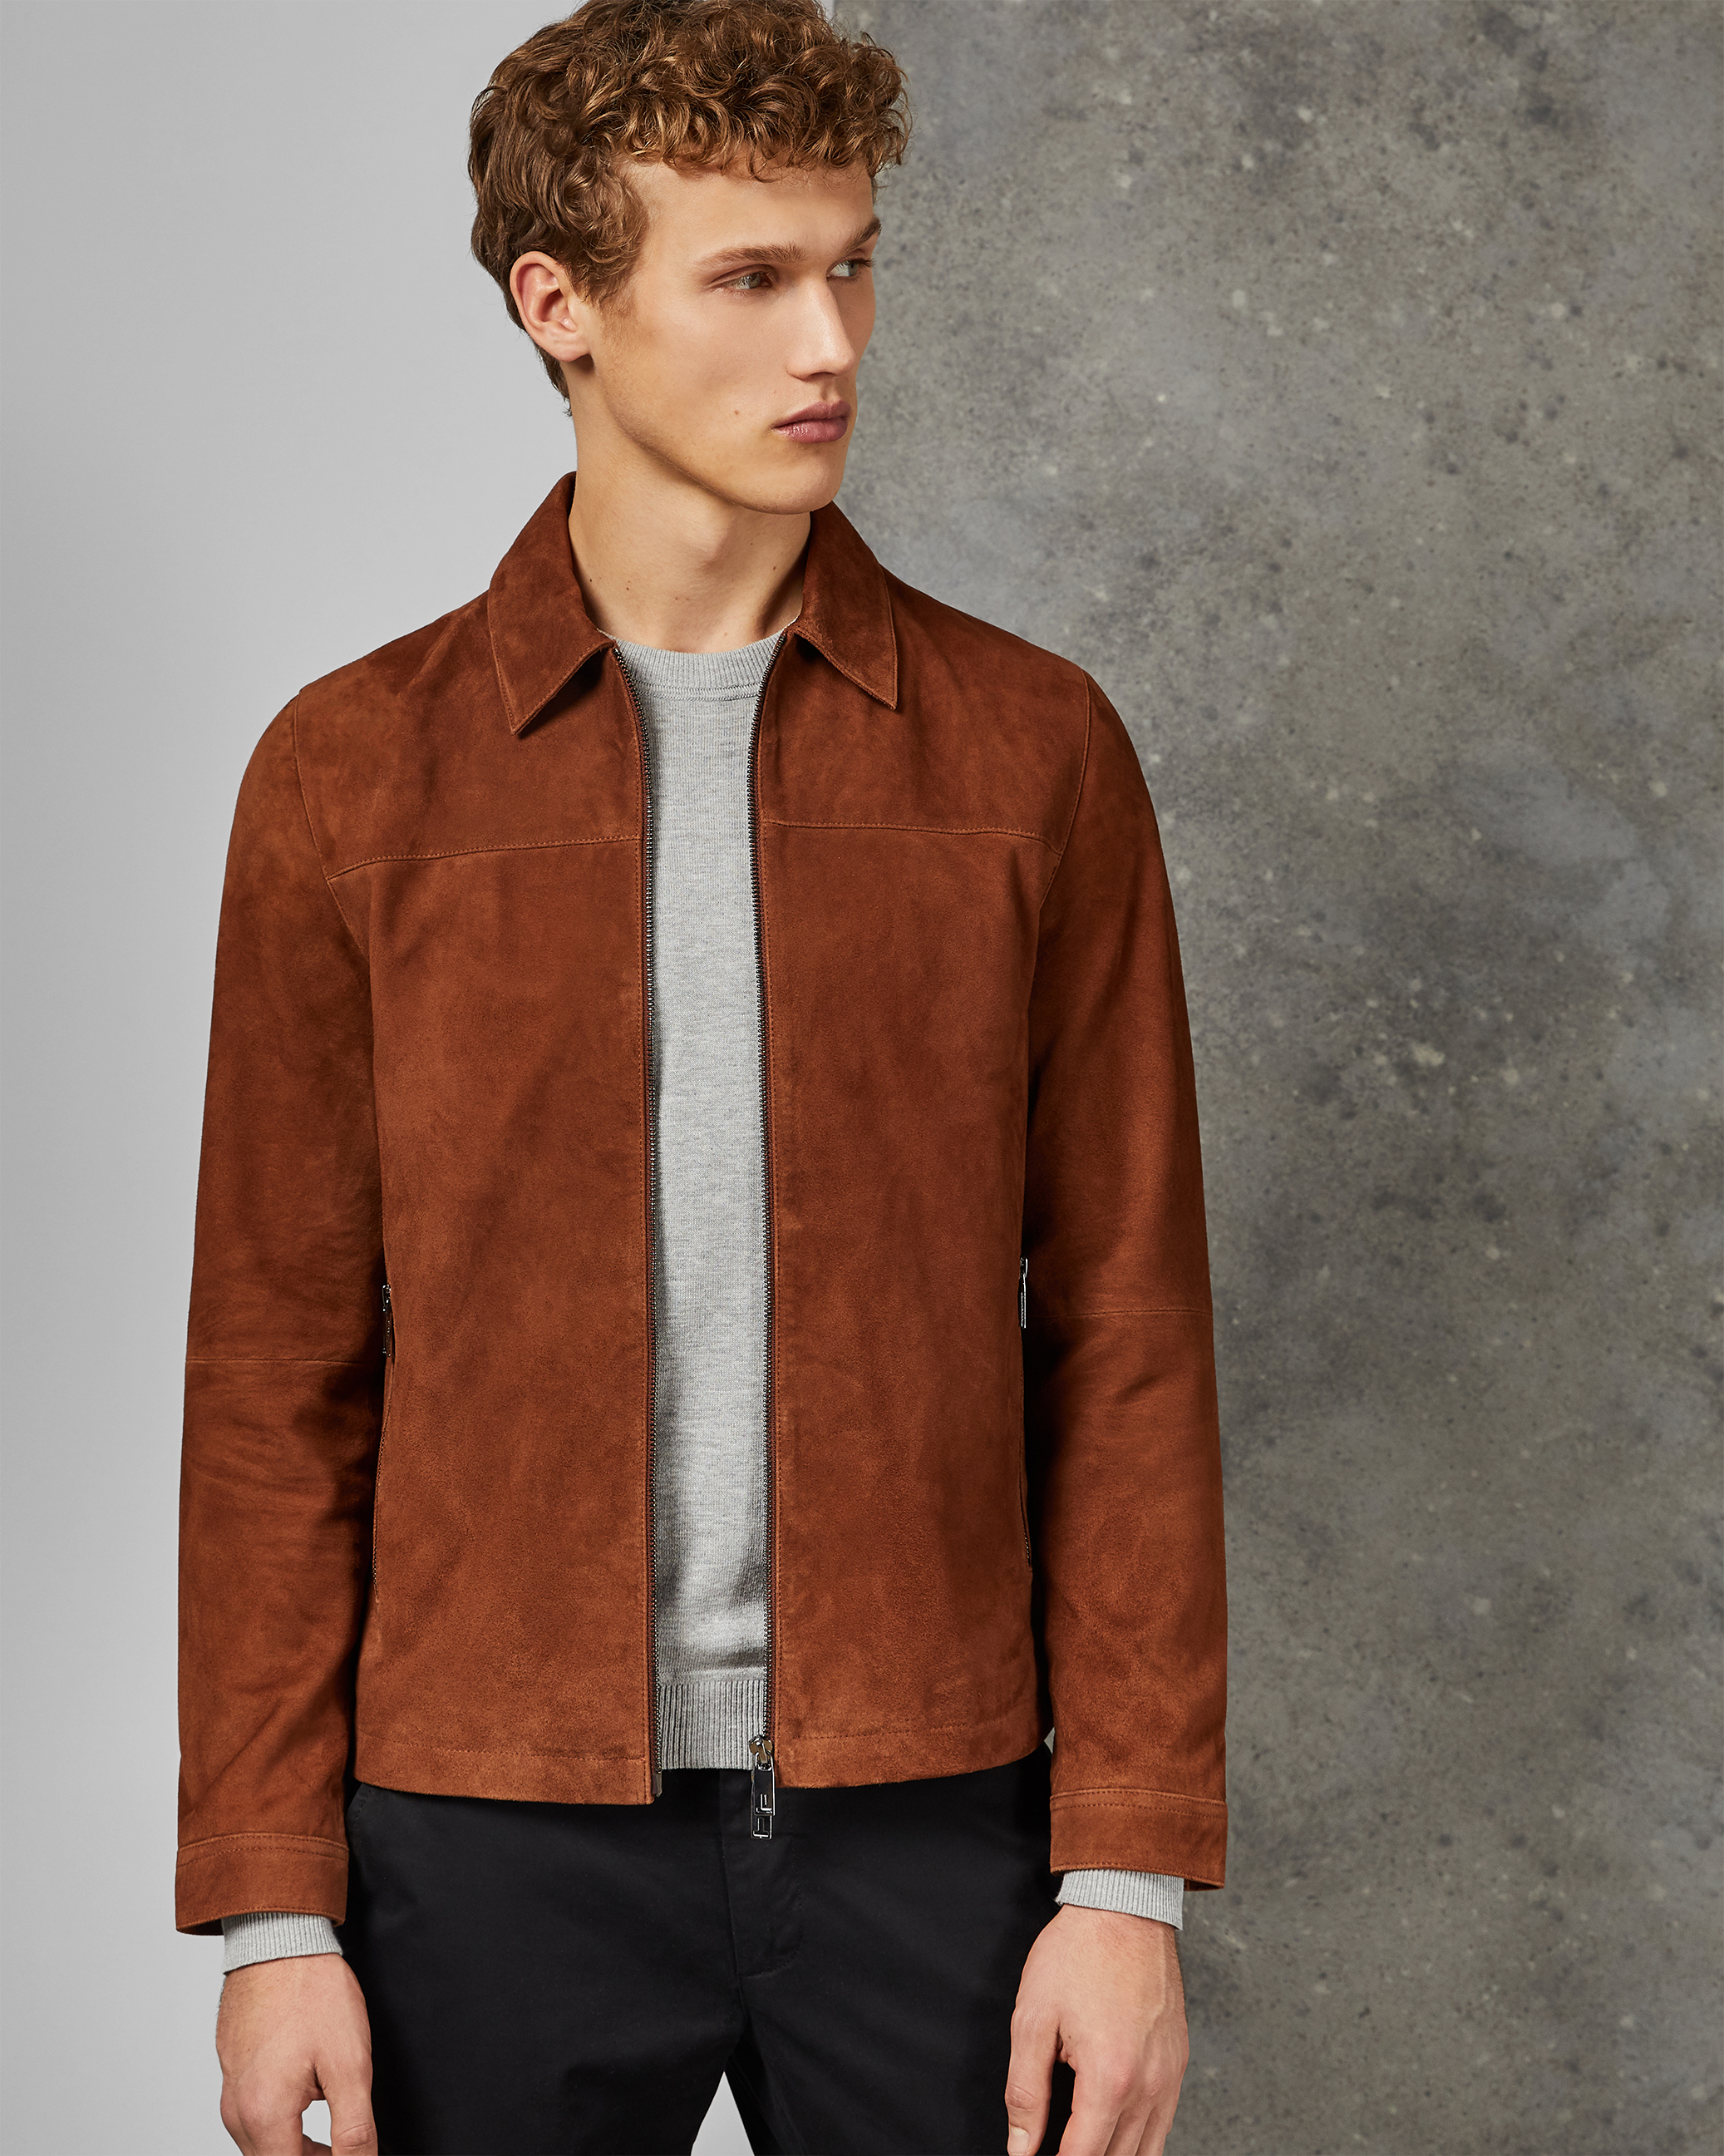 SALZA Suede zip through jacket by Ted